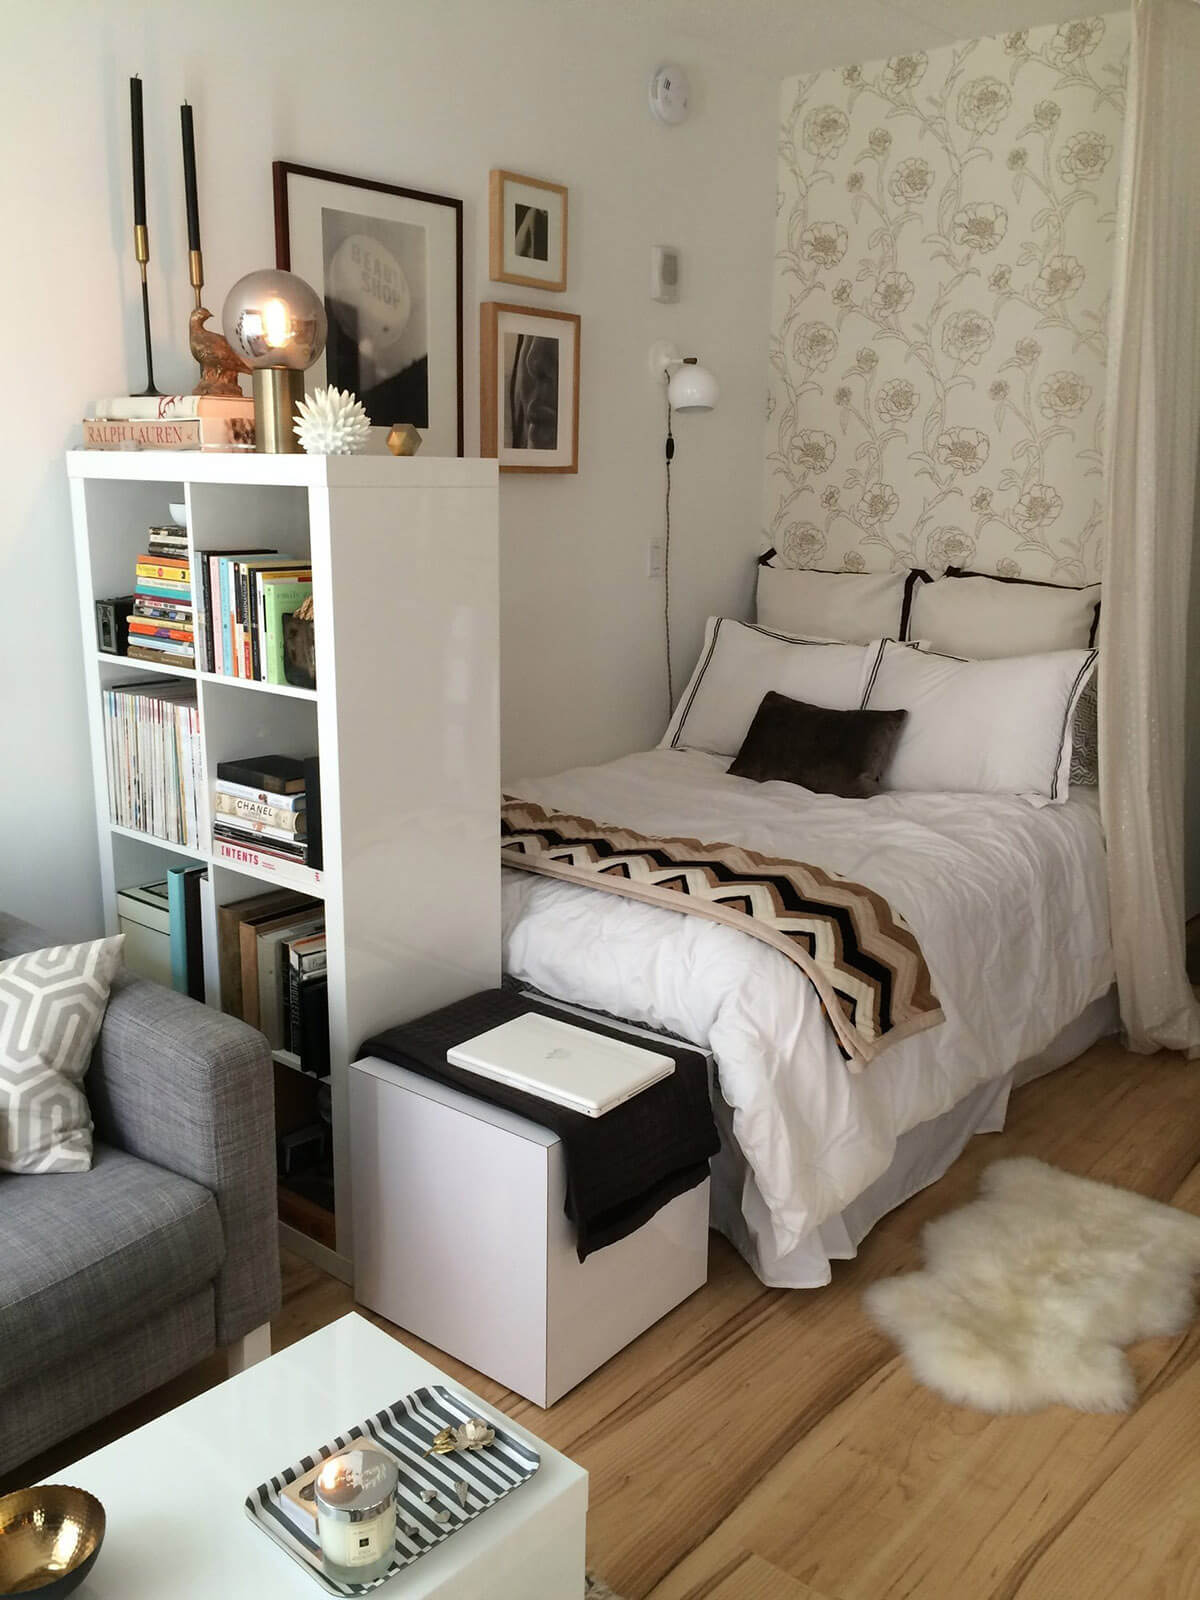 Awesome Small Bedroom Ideas With A Tall Bookshelf